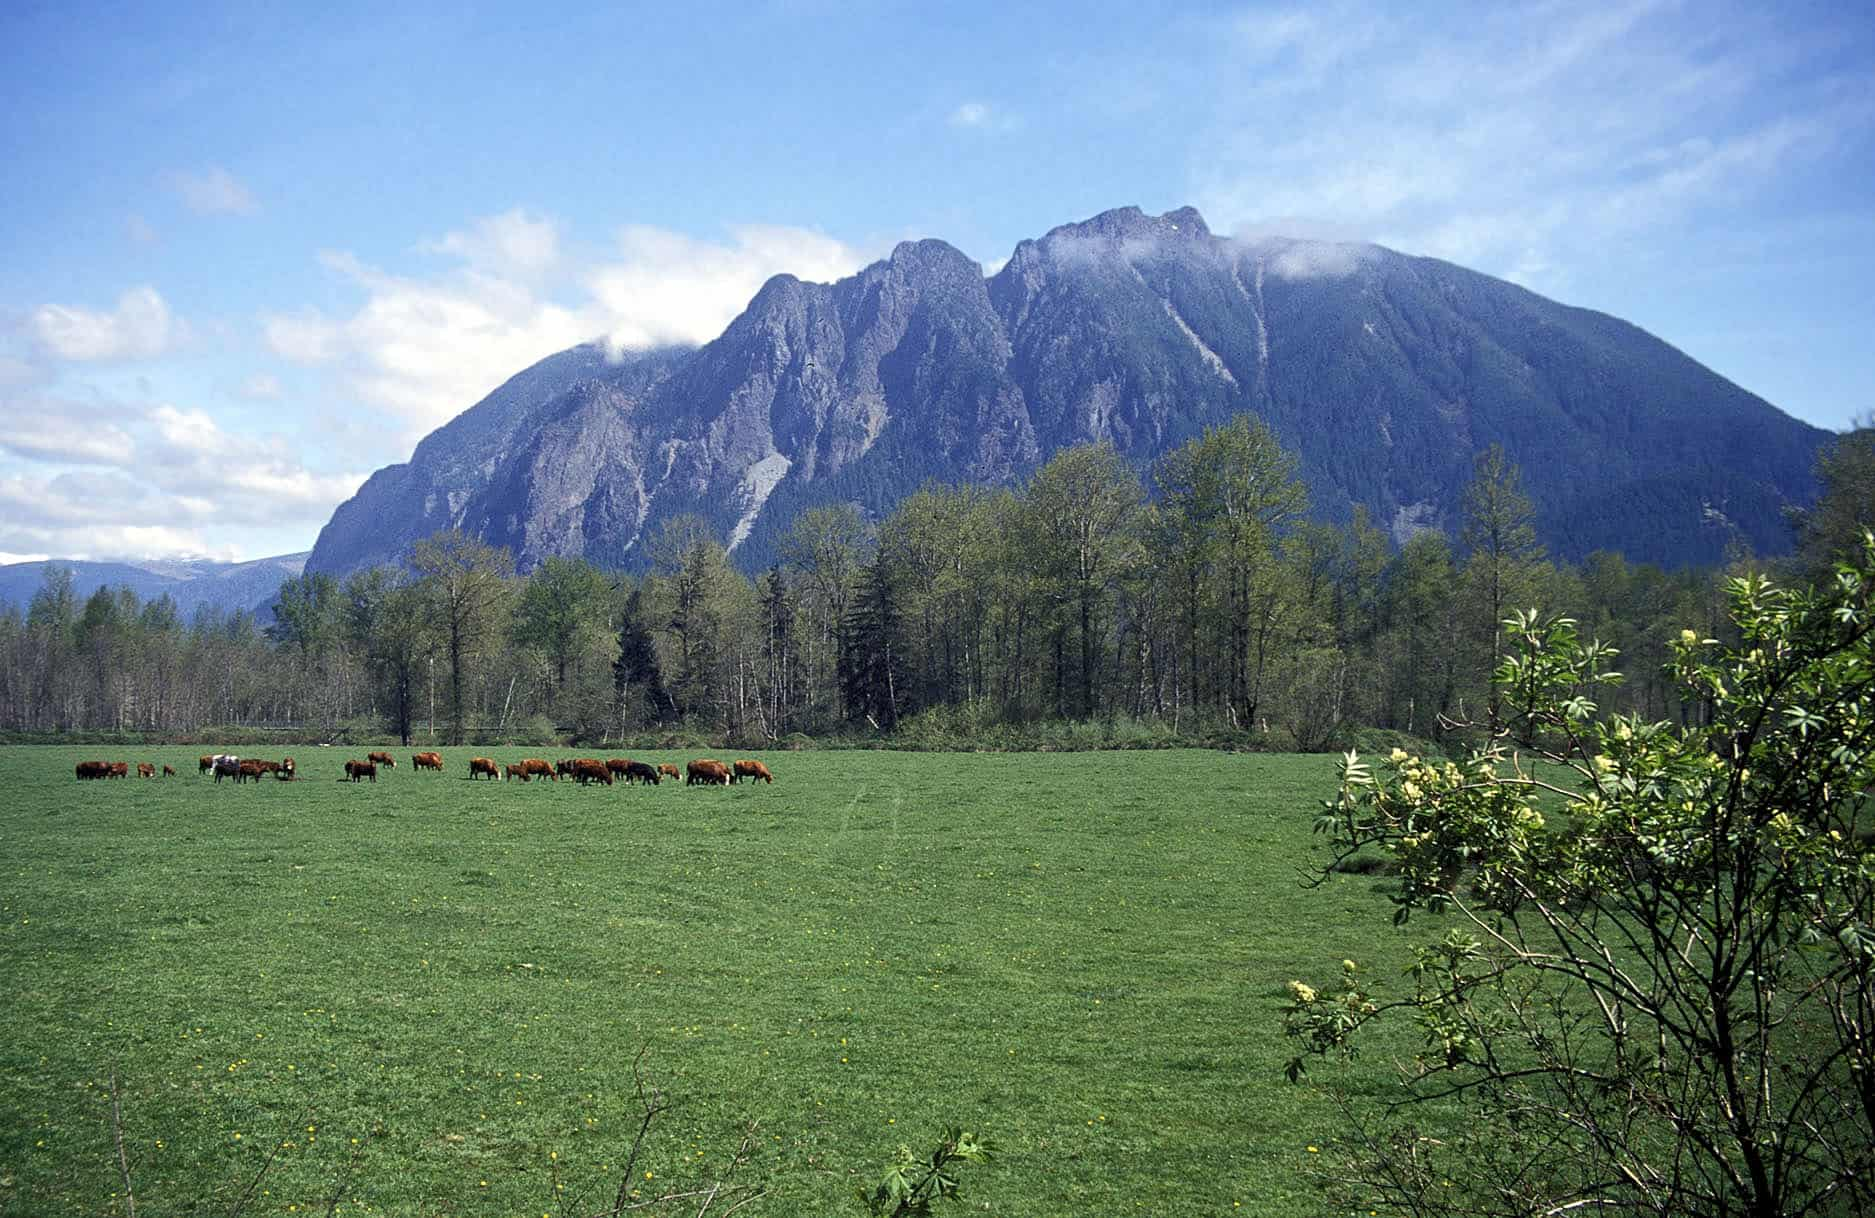 Mount Si and cows at Meadowbrook Farm